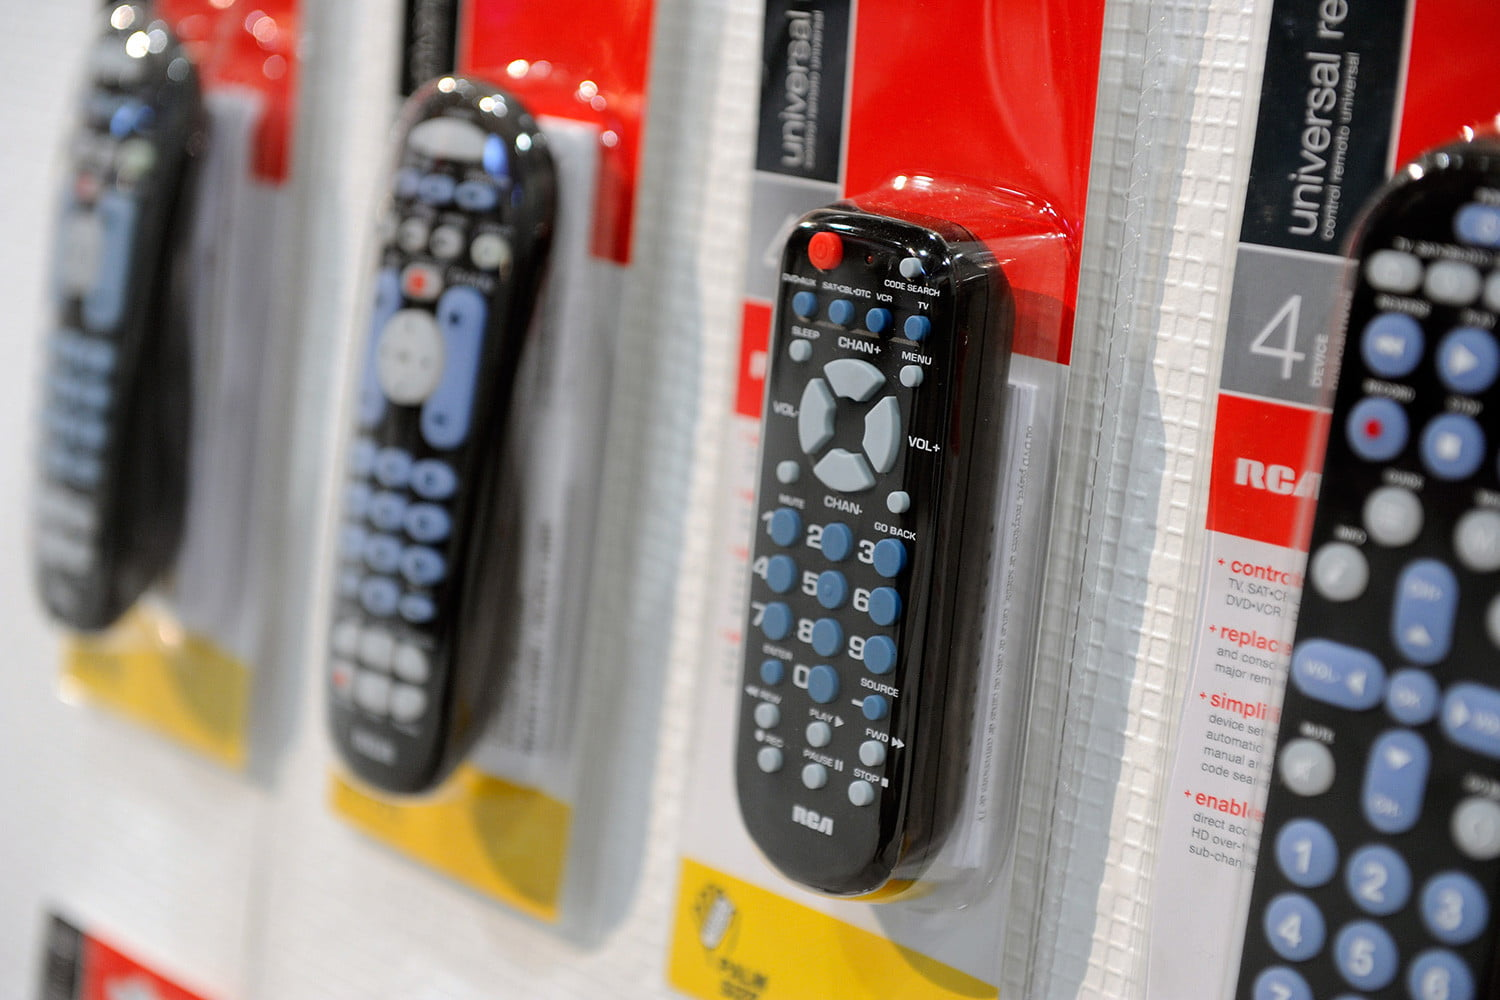 RCA Remote Codes Tips and Setup Guide